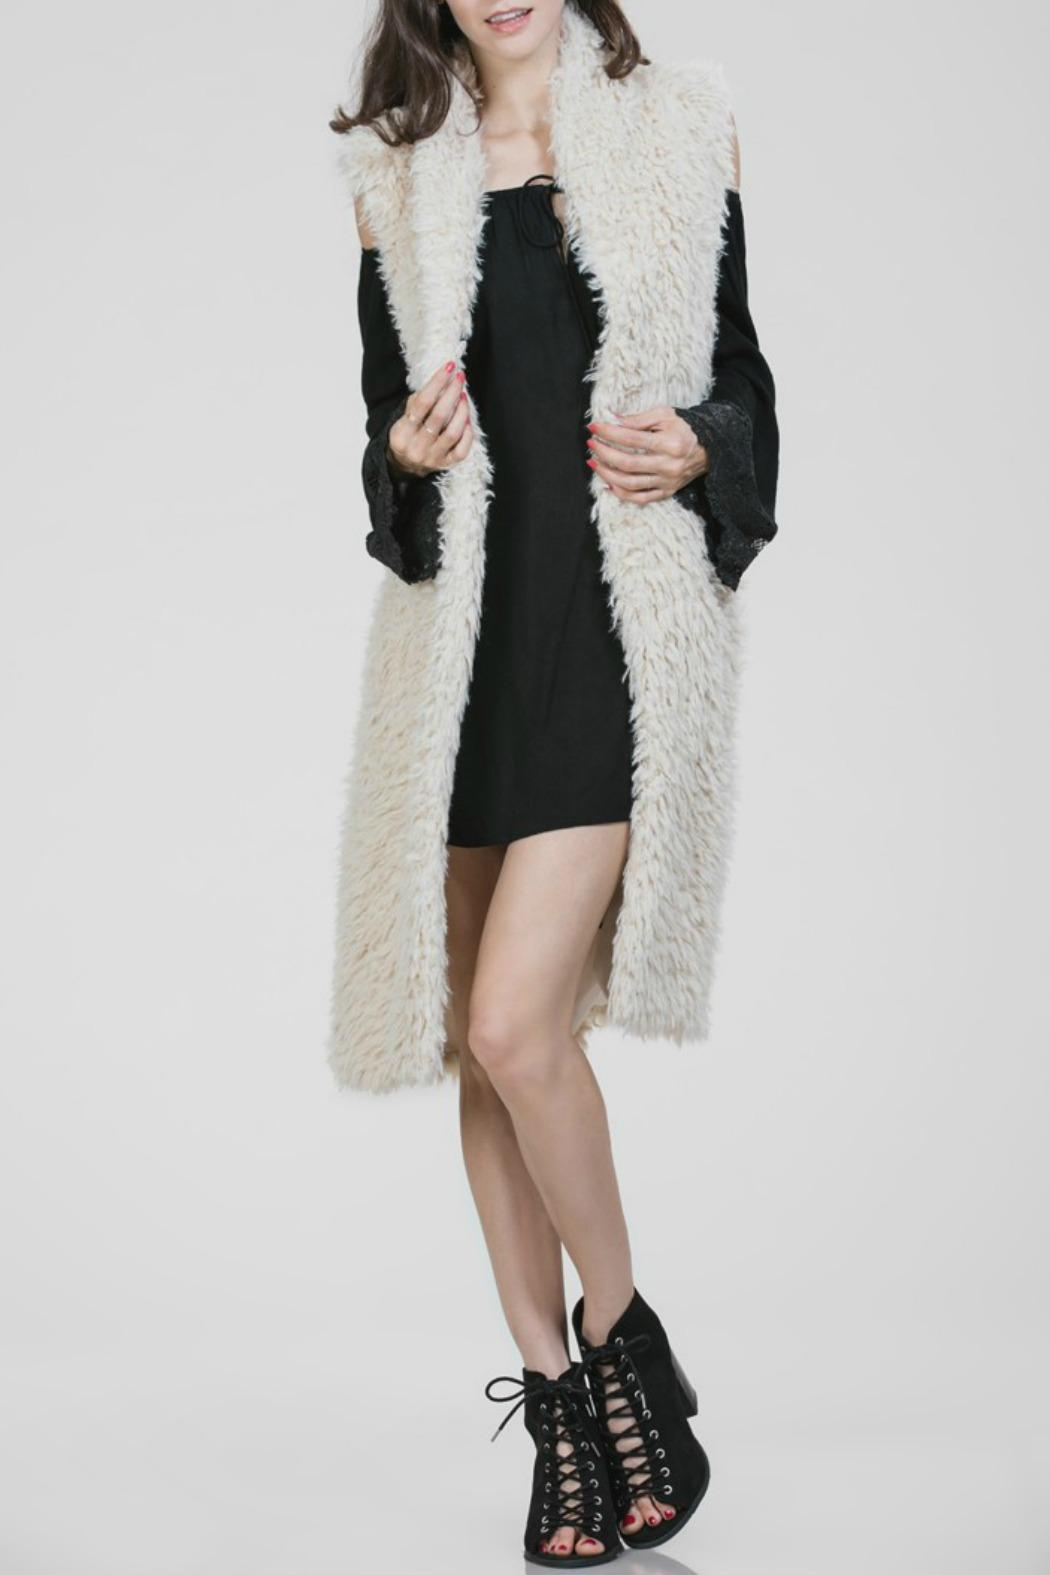 Ladies fur vest: Women's Clothing & Apparel | londonmetalumni.ml Online Return Instore · Find A Store Near You · New Arrivals Daily · Style Since Types: Dresses, Handbags, Sunglasses, Tops, and More.